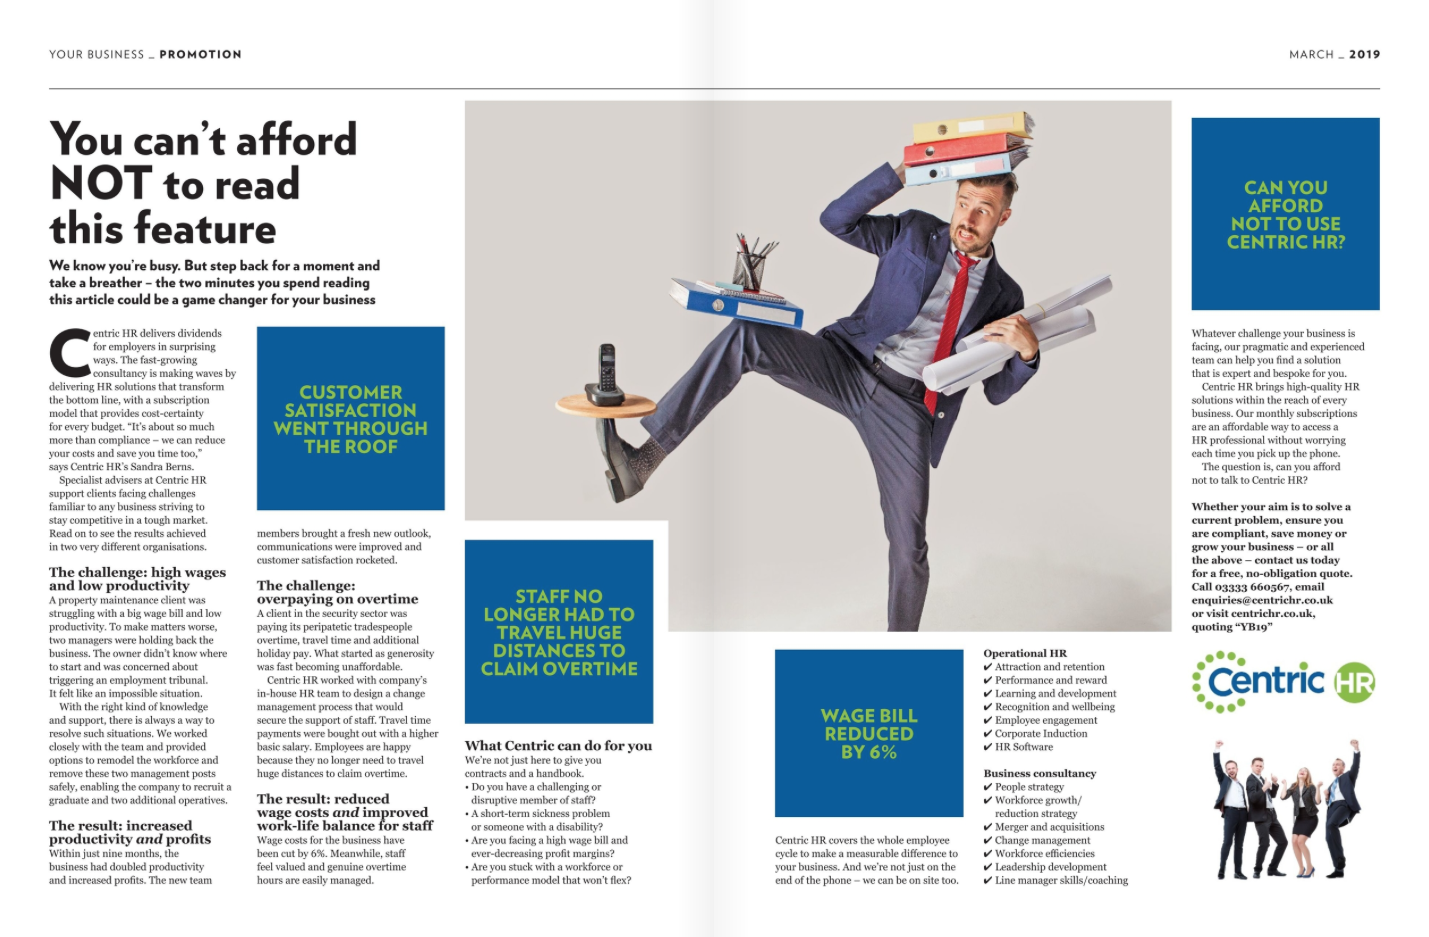 Your Business Magazine Feature - Centric HR